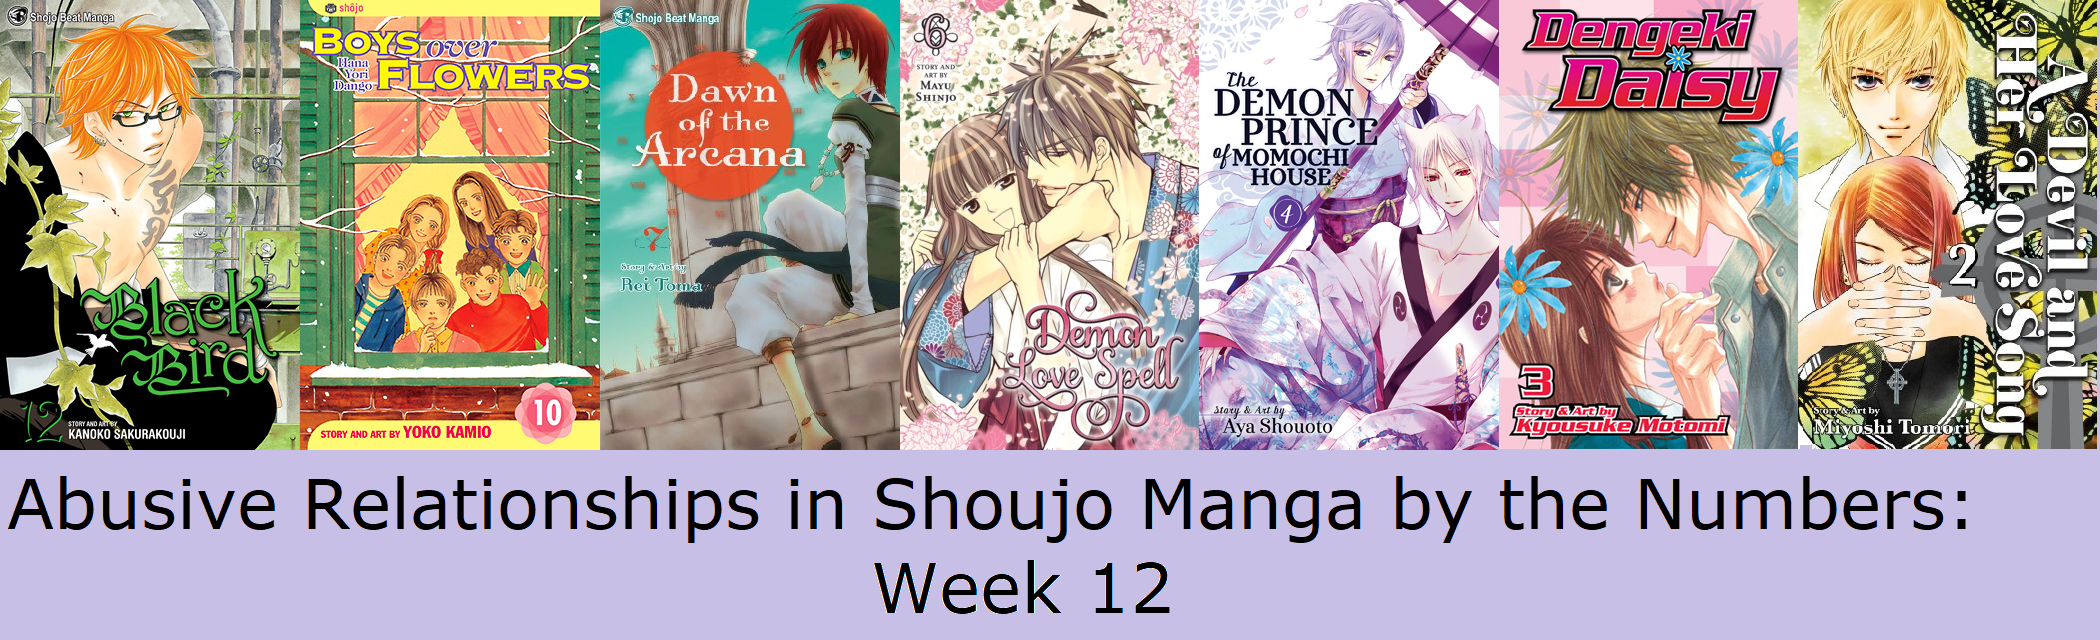 Abusive Relationships in Shoujo Manga by the Numbers: Week